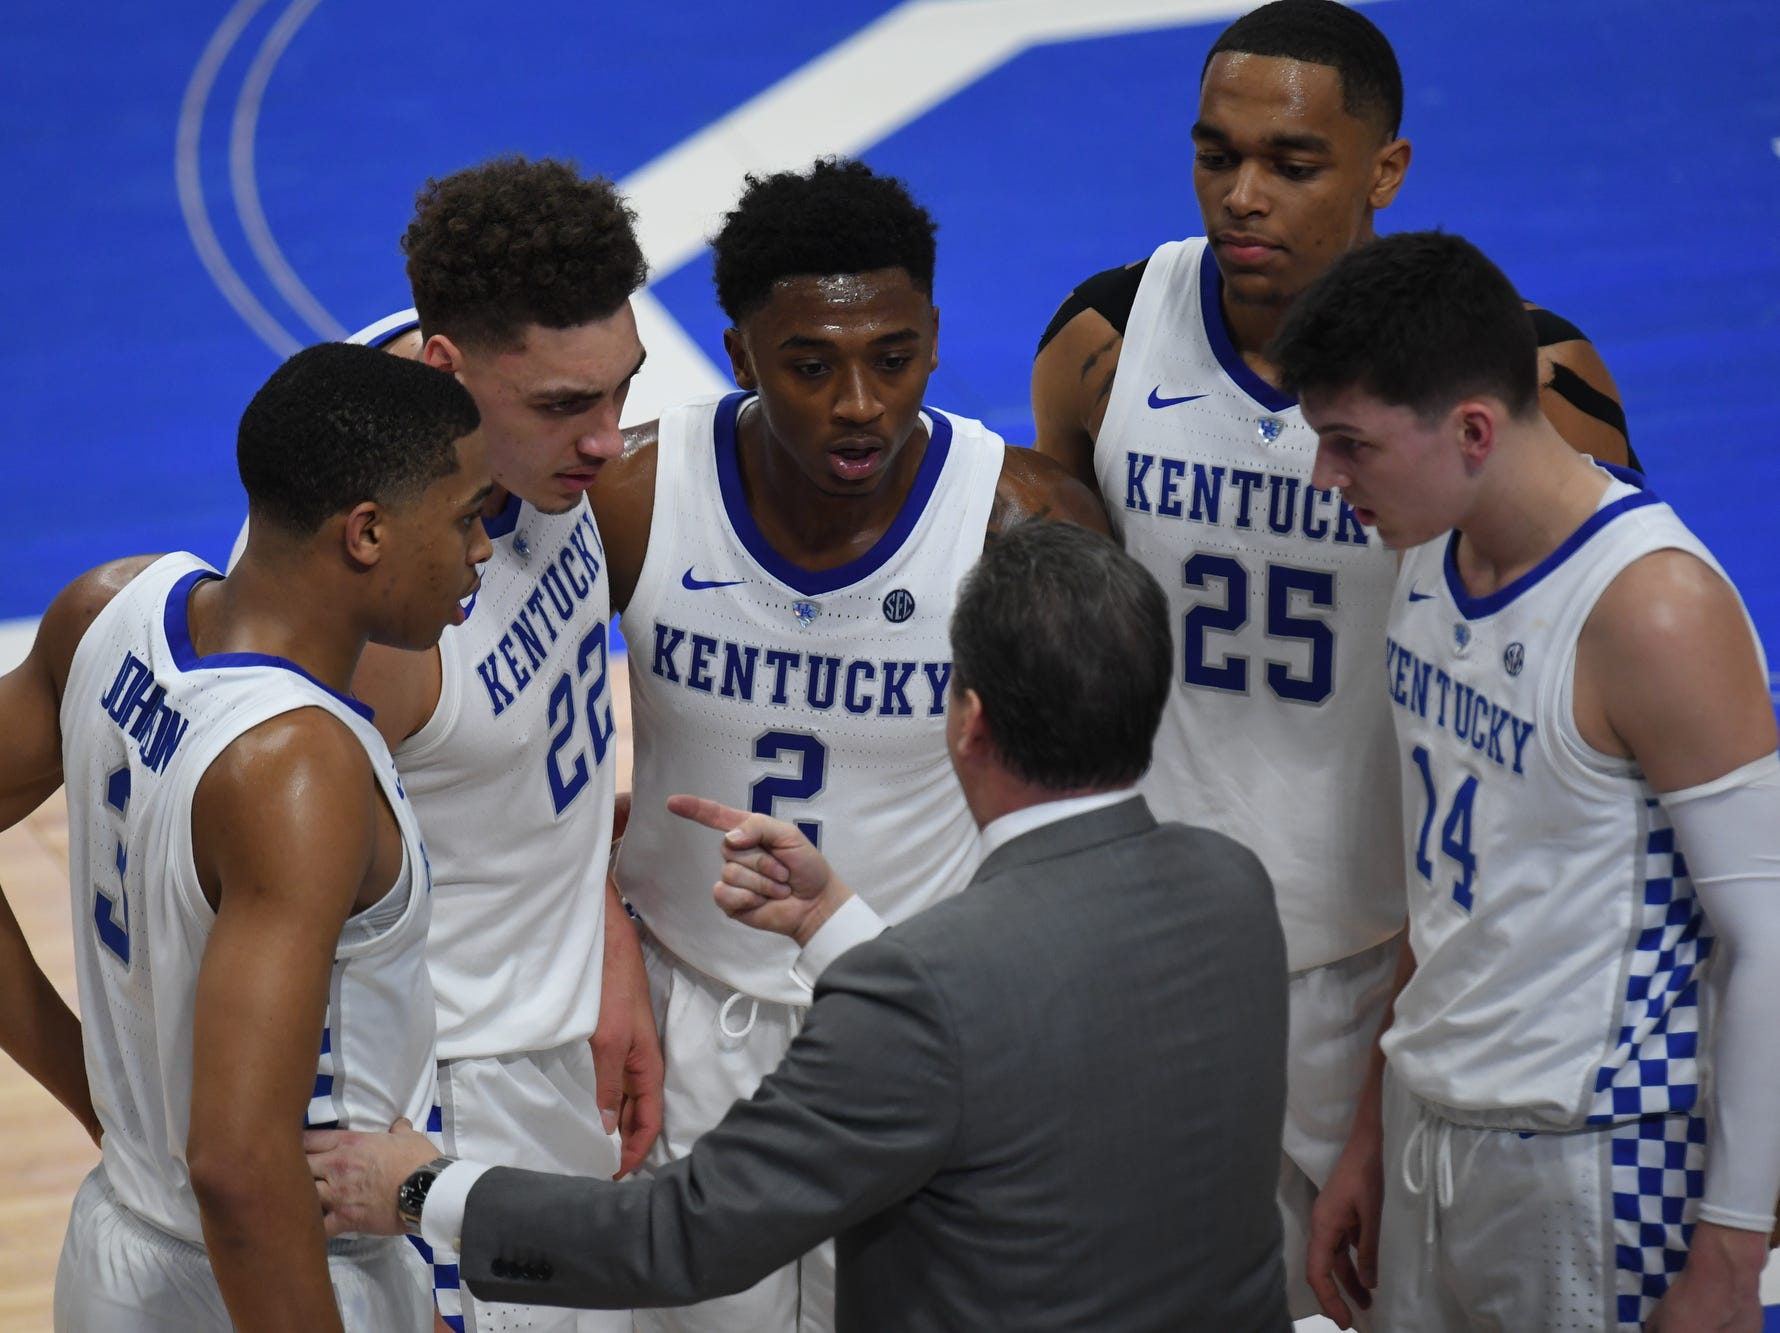 UK head coach John Calipari huddles with his starters  during the University of Kentucky mens basketball game against Tennessee at Rupp Arena in Lexington, Kentucky on Saturday, February 16, 2019.